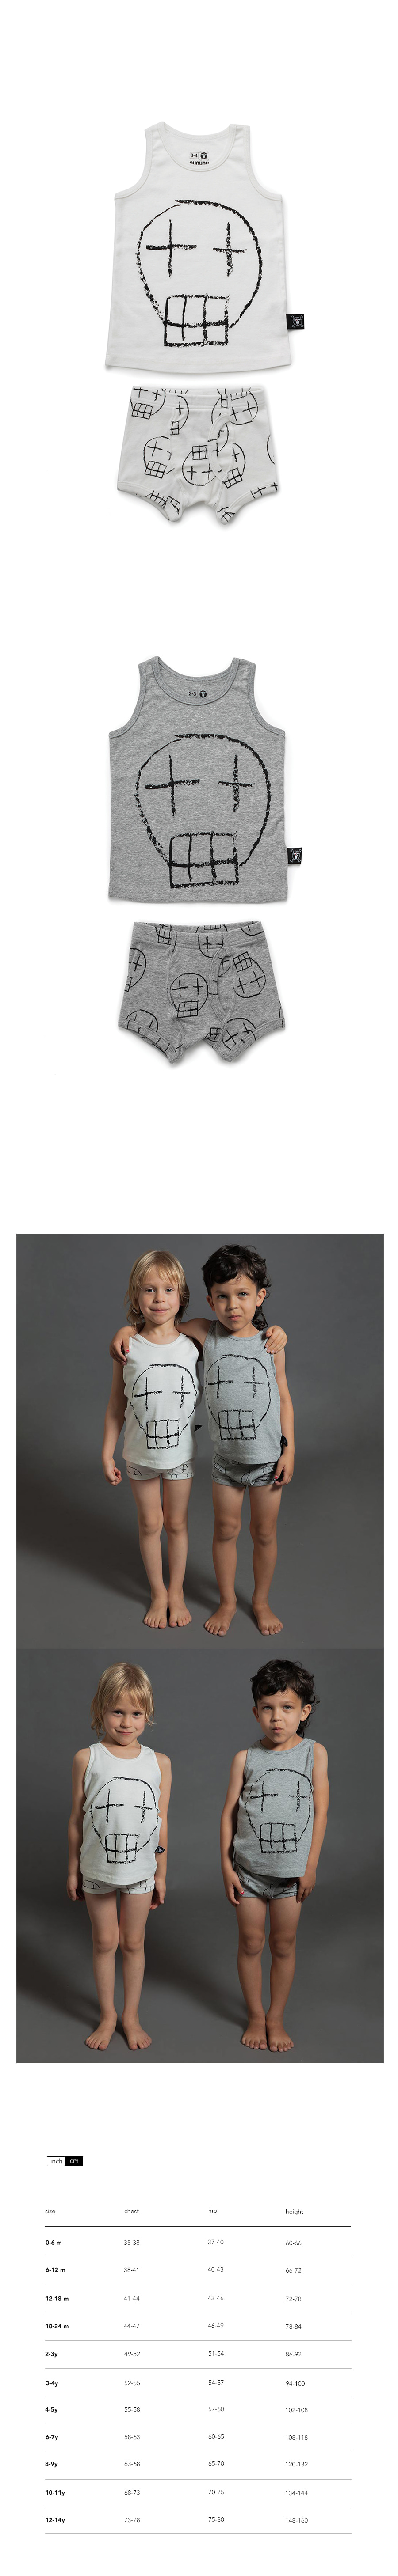 Boys sketch skull underwear set